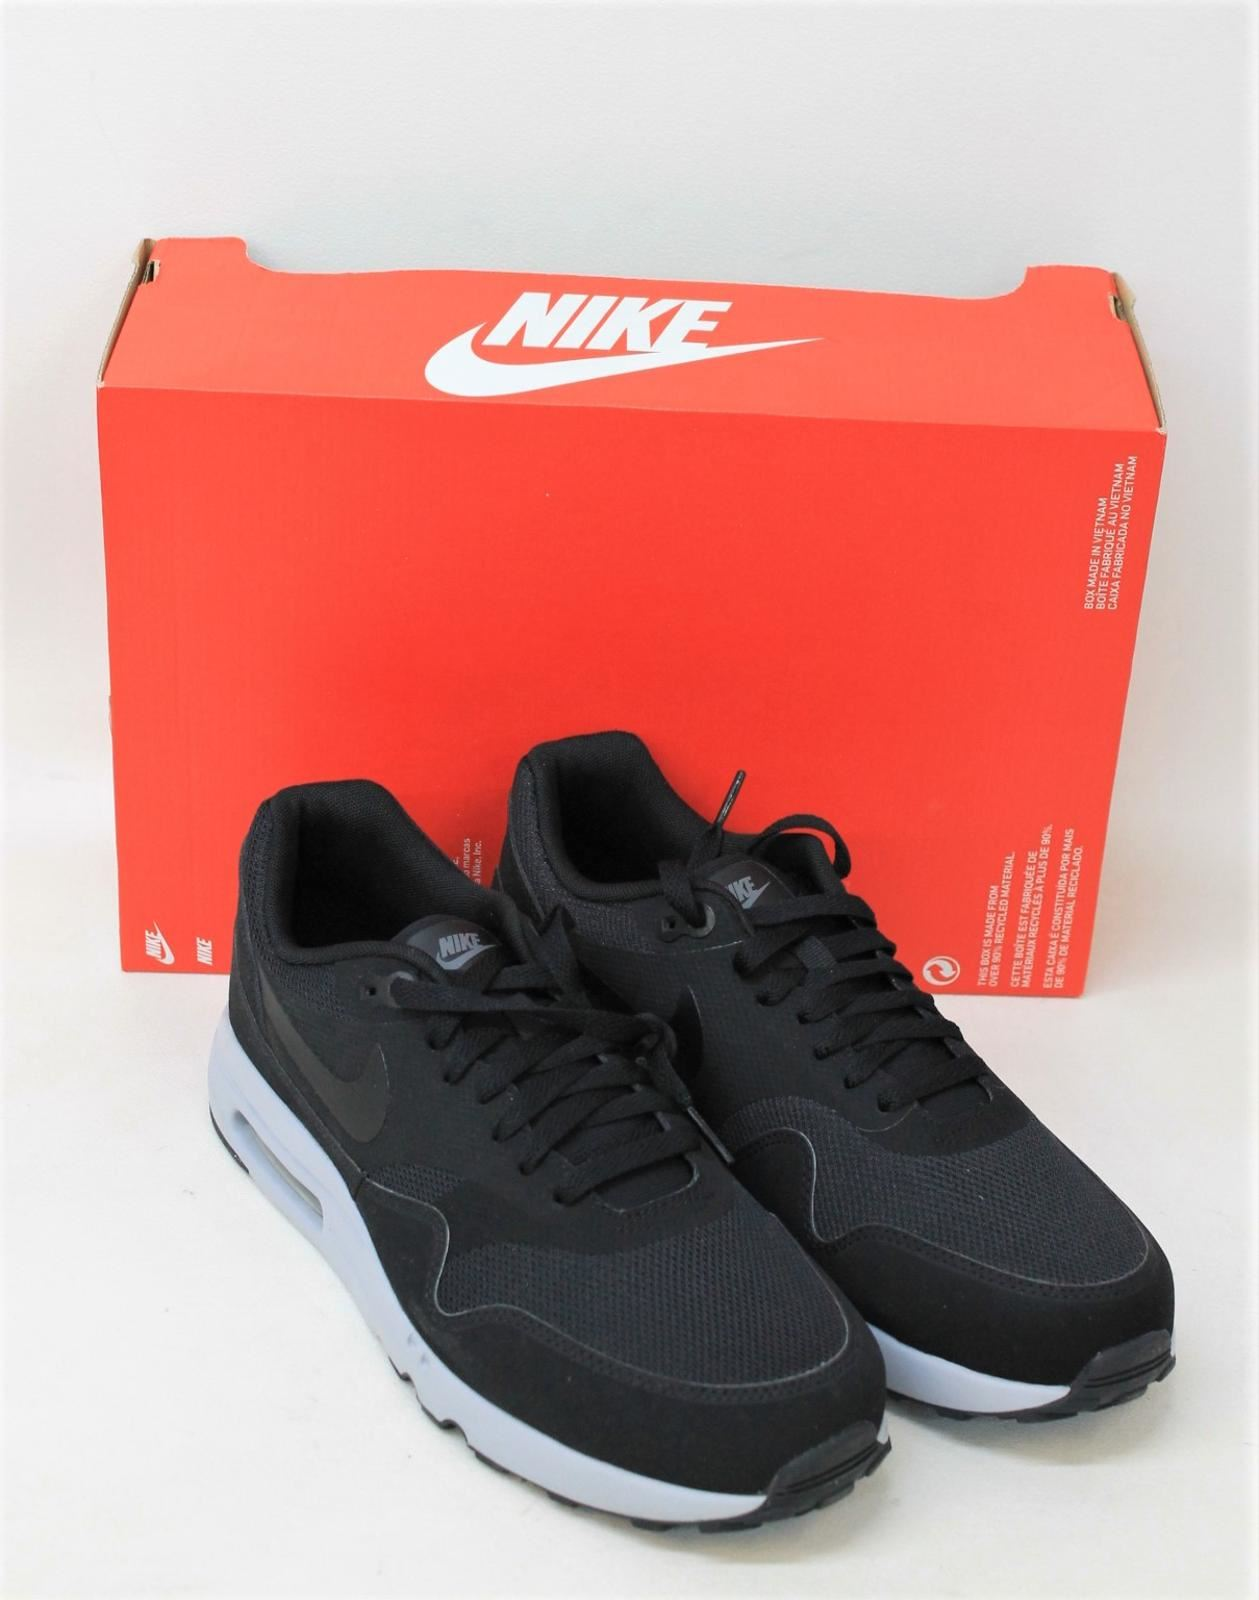 sports shoes 88605 9c49e NIKE Men's Air Max 1 Ultra 2.0 Essential Black Running Shoes Size ...